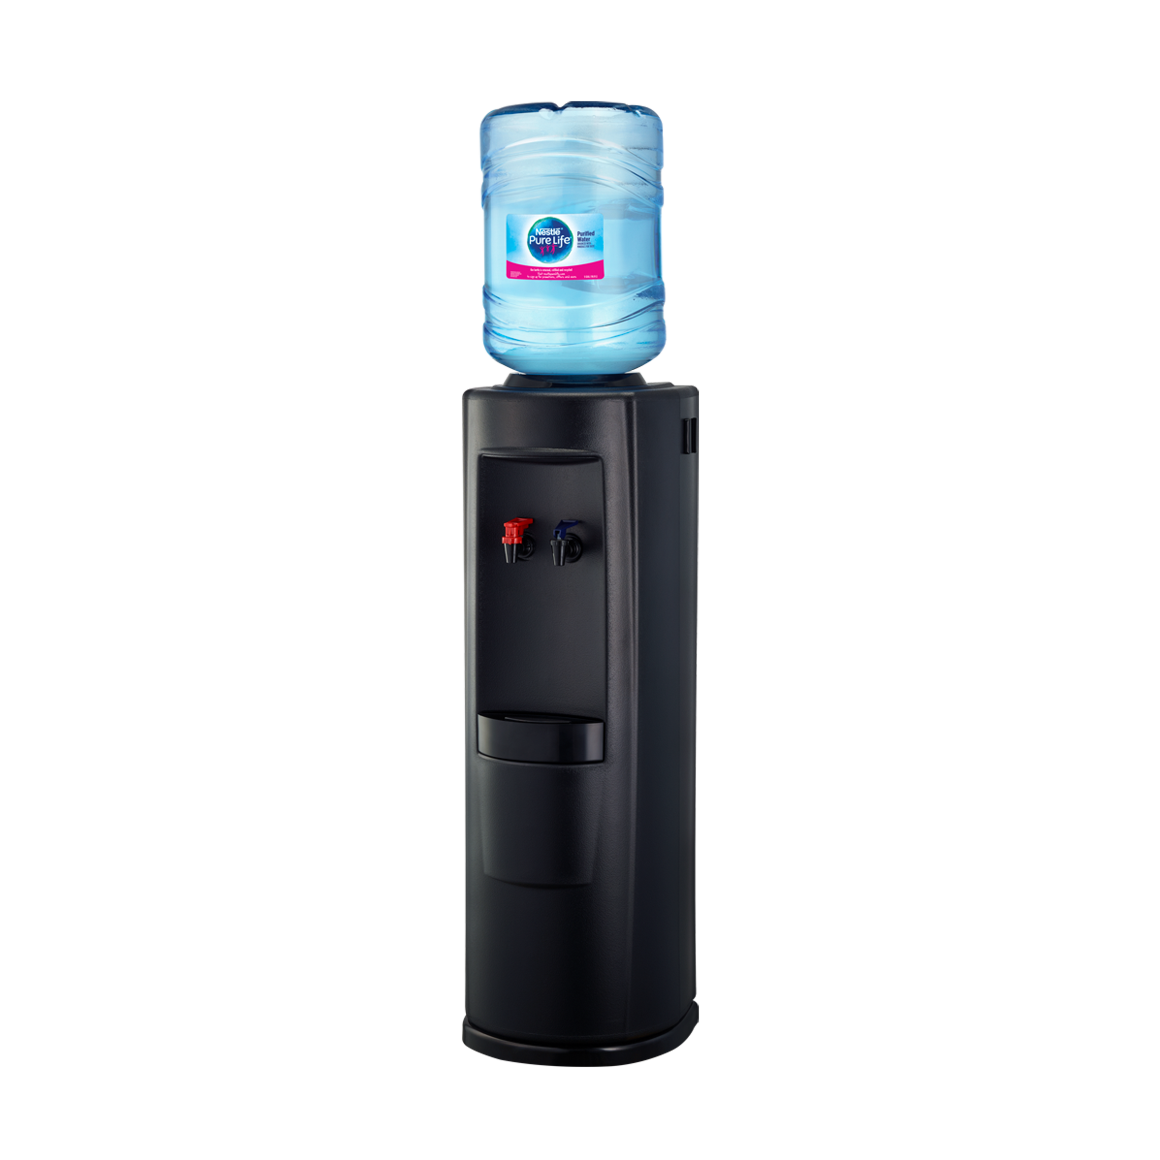 Hot & Cold Water Dispenser (No Spill) Image1